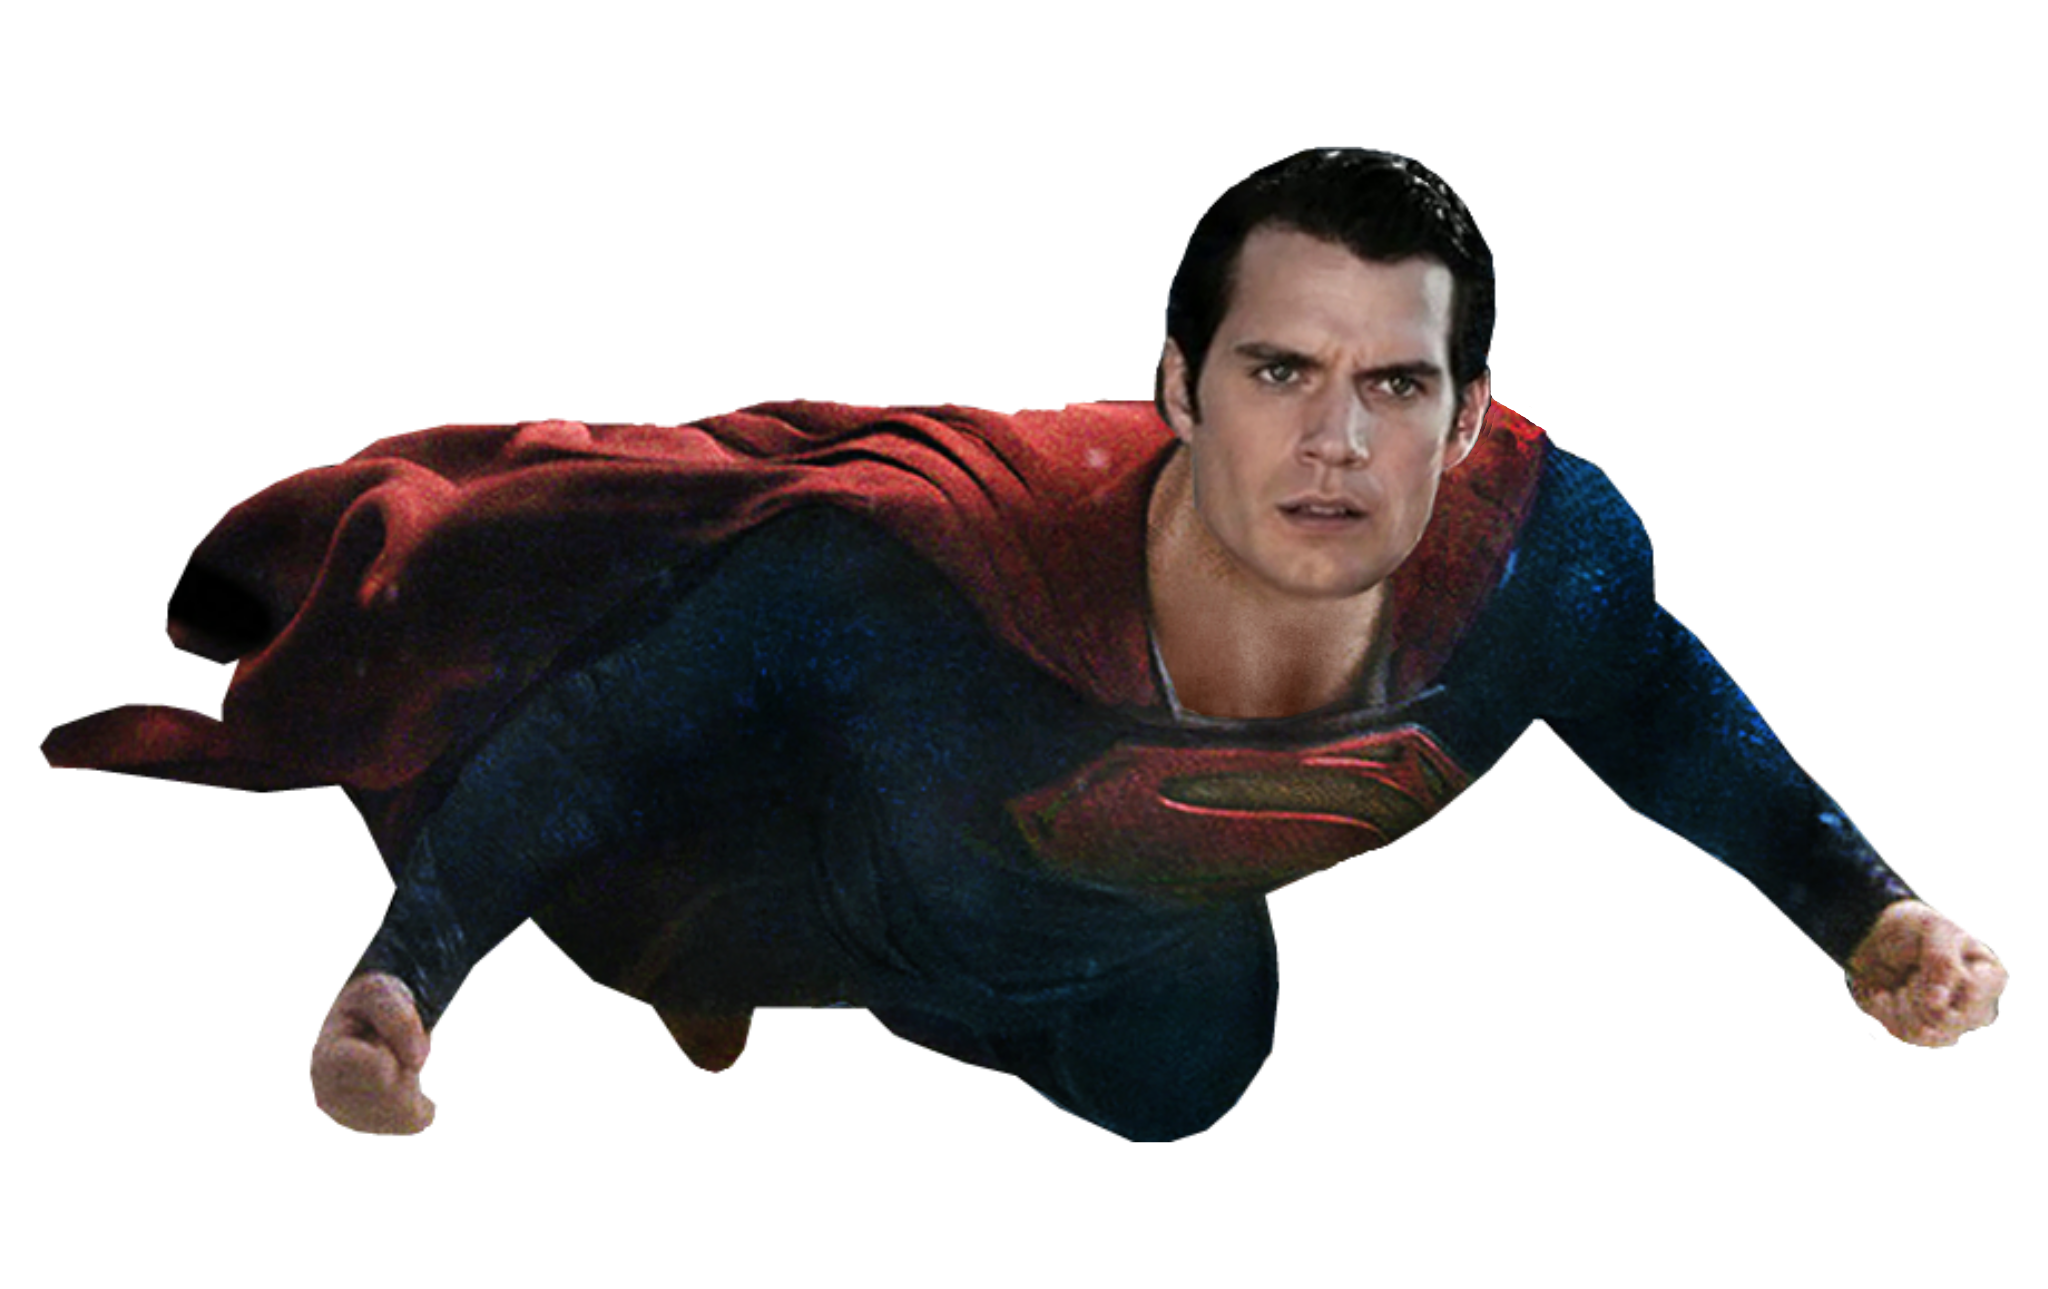 Man Of Steel | Super Man PNG Image